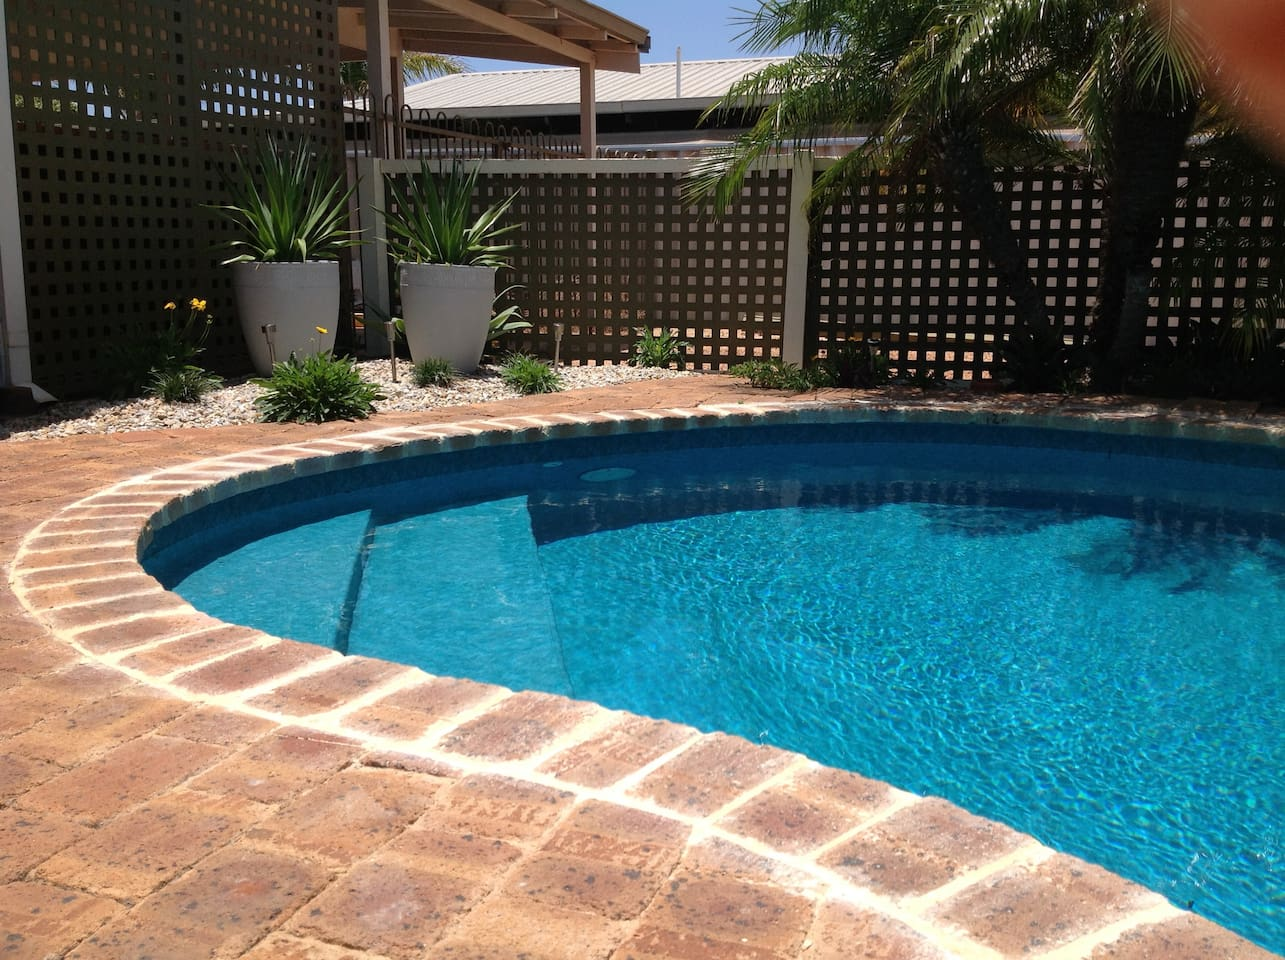 pool set in tranquil surrounds